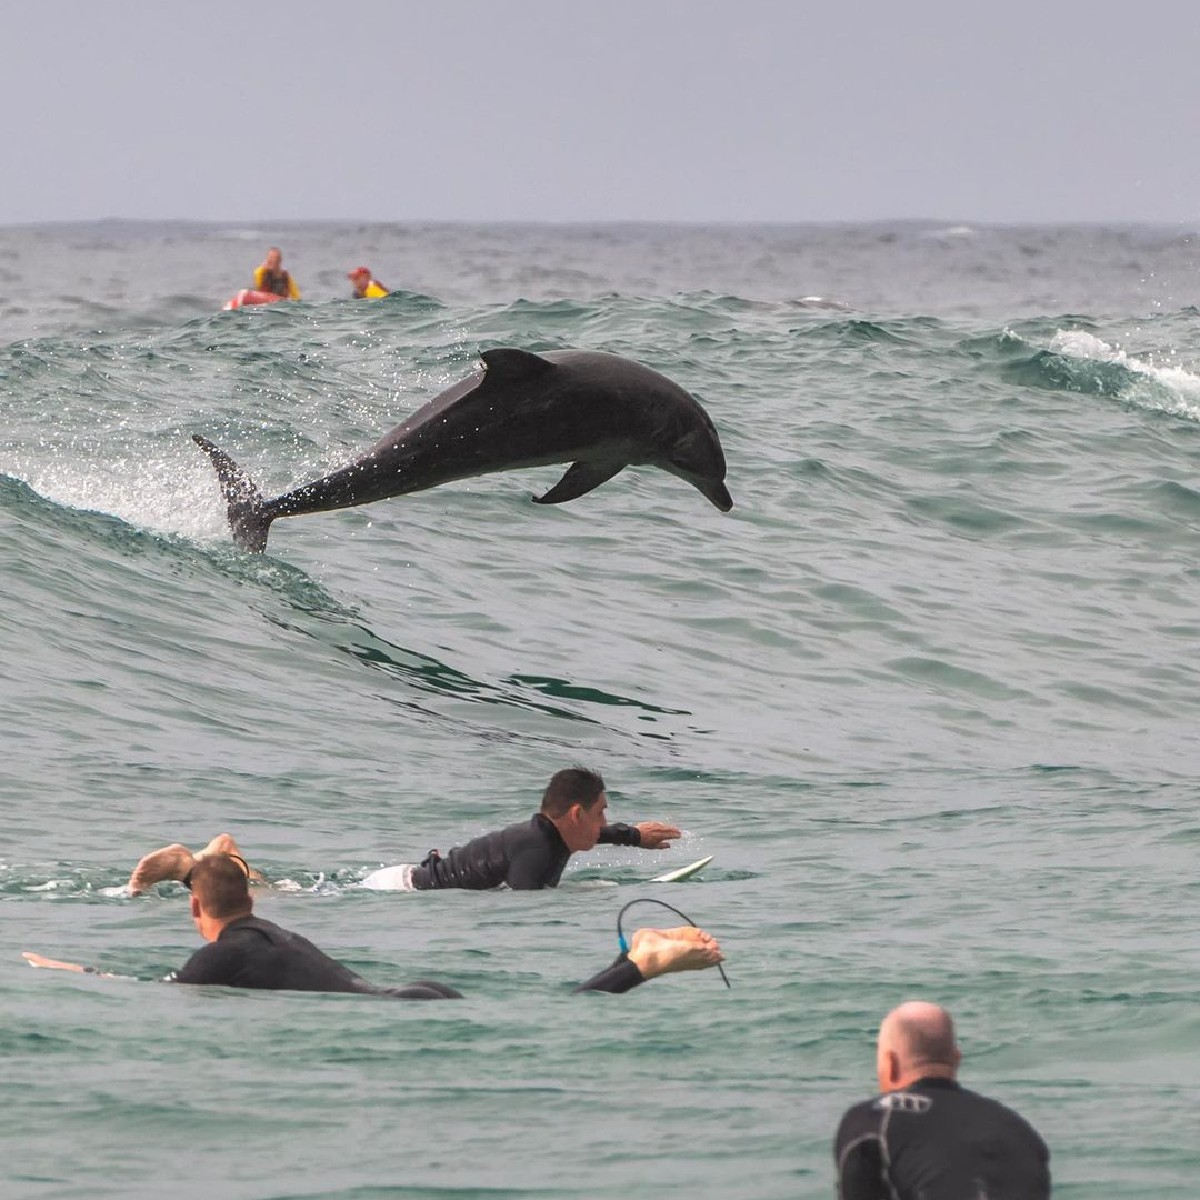 Make way please, pro surfer coming through!🐬   IG/rugligeri caught the incredible moment when this #dolphin decided to teach the surfers at Tamarama beach in @NewSouthWalesa thing or two 🏄♂️ 😂  #seeaustralia #LoveNSW #ilovesydney #holidayherethisyear https://t.co/BLRLTICGDT